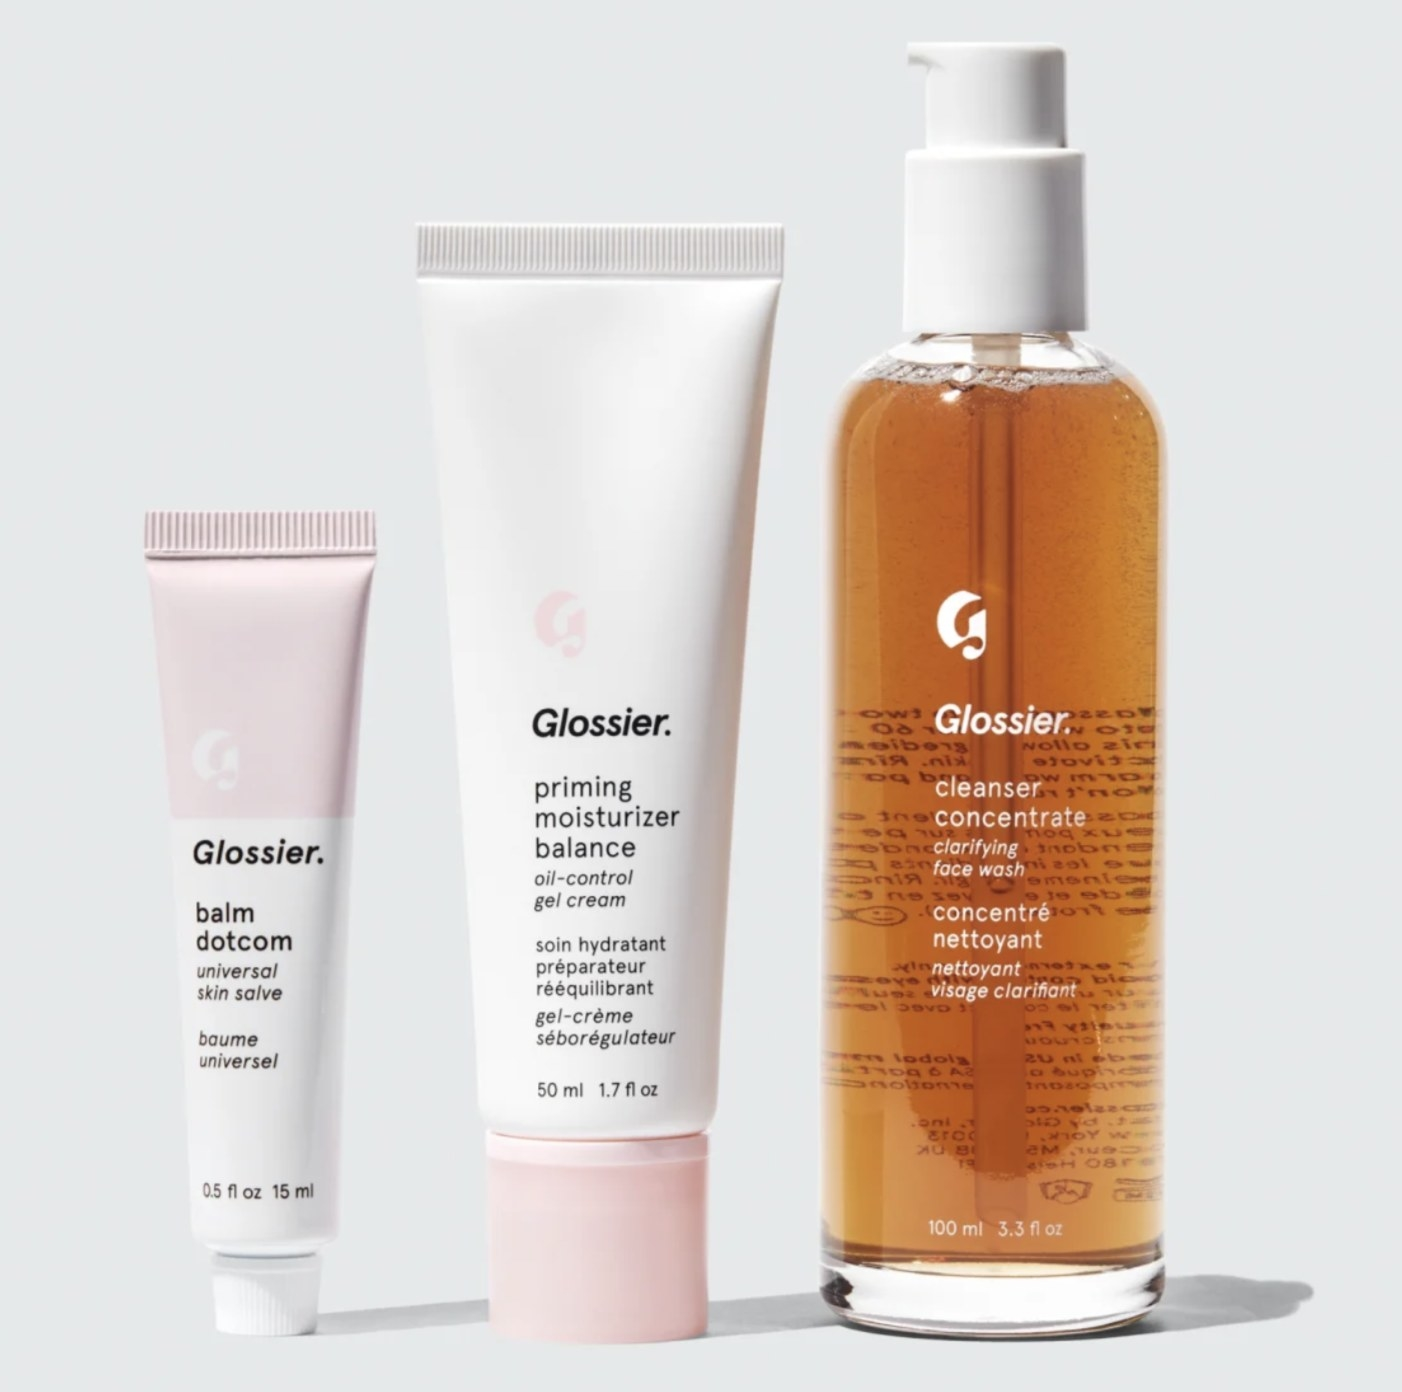 the products in the skincare set